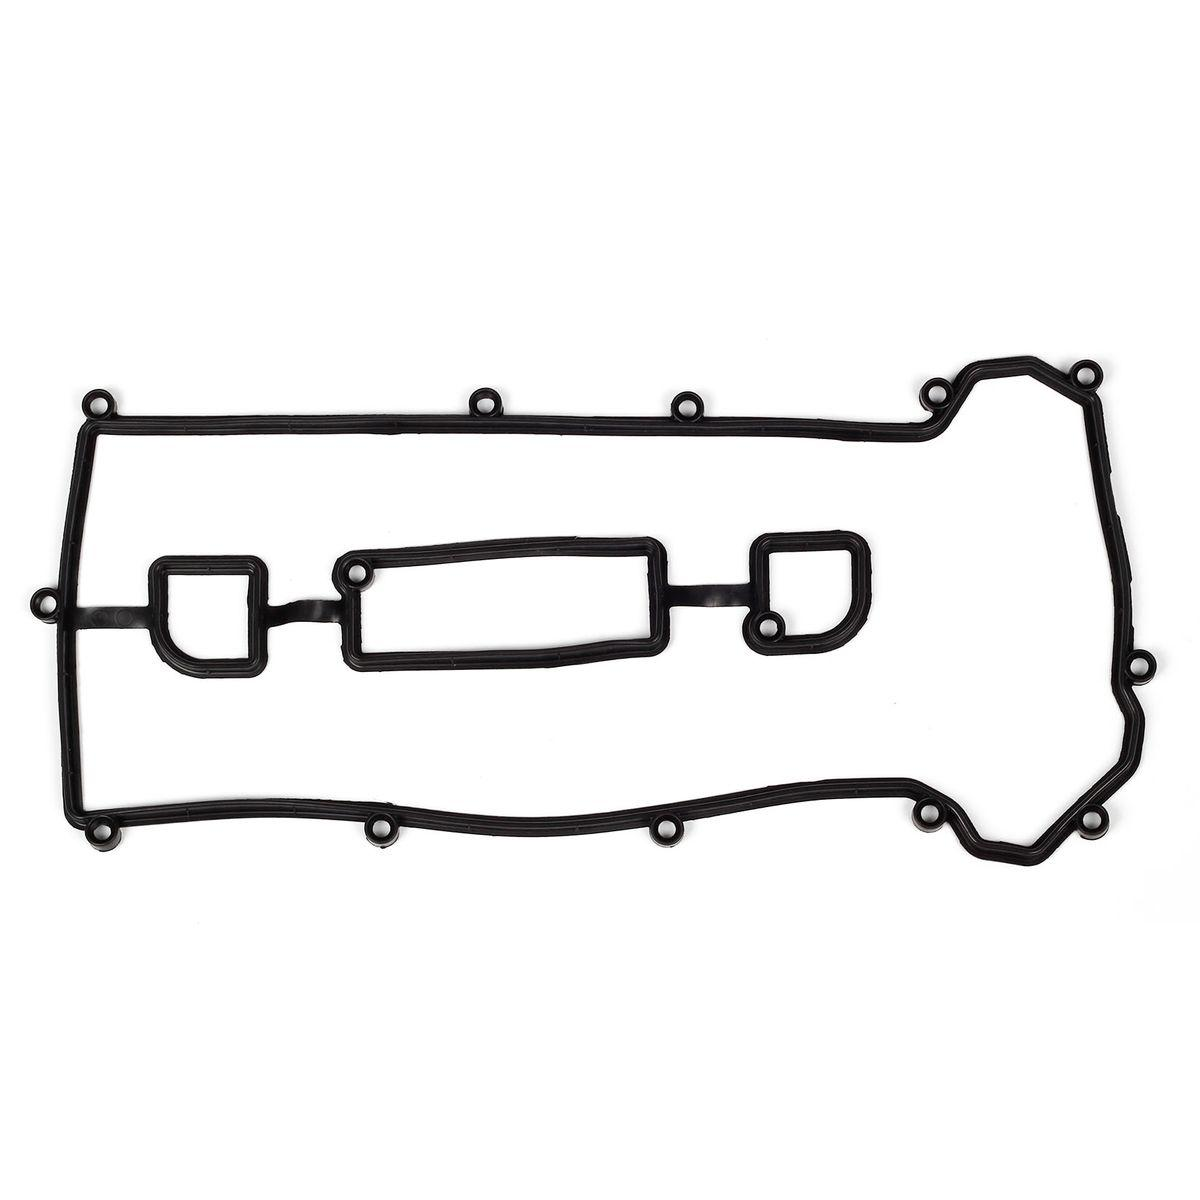 Valve Cover Gasket For 2001-2005 Mazda 6 B2300 Ford Focus2